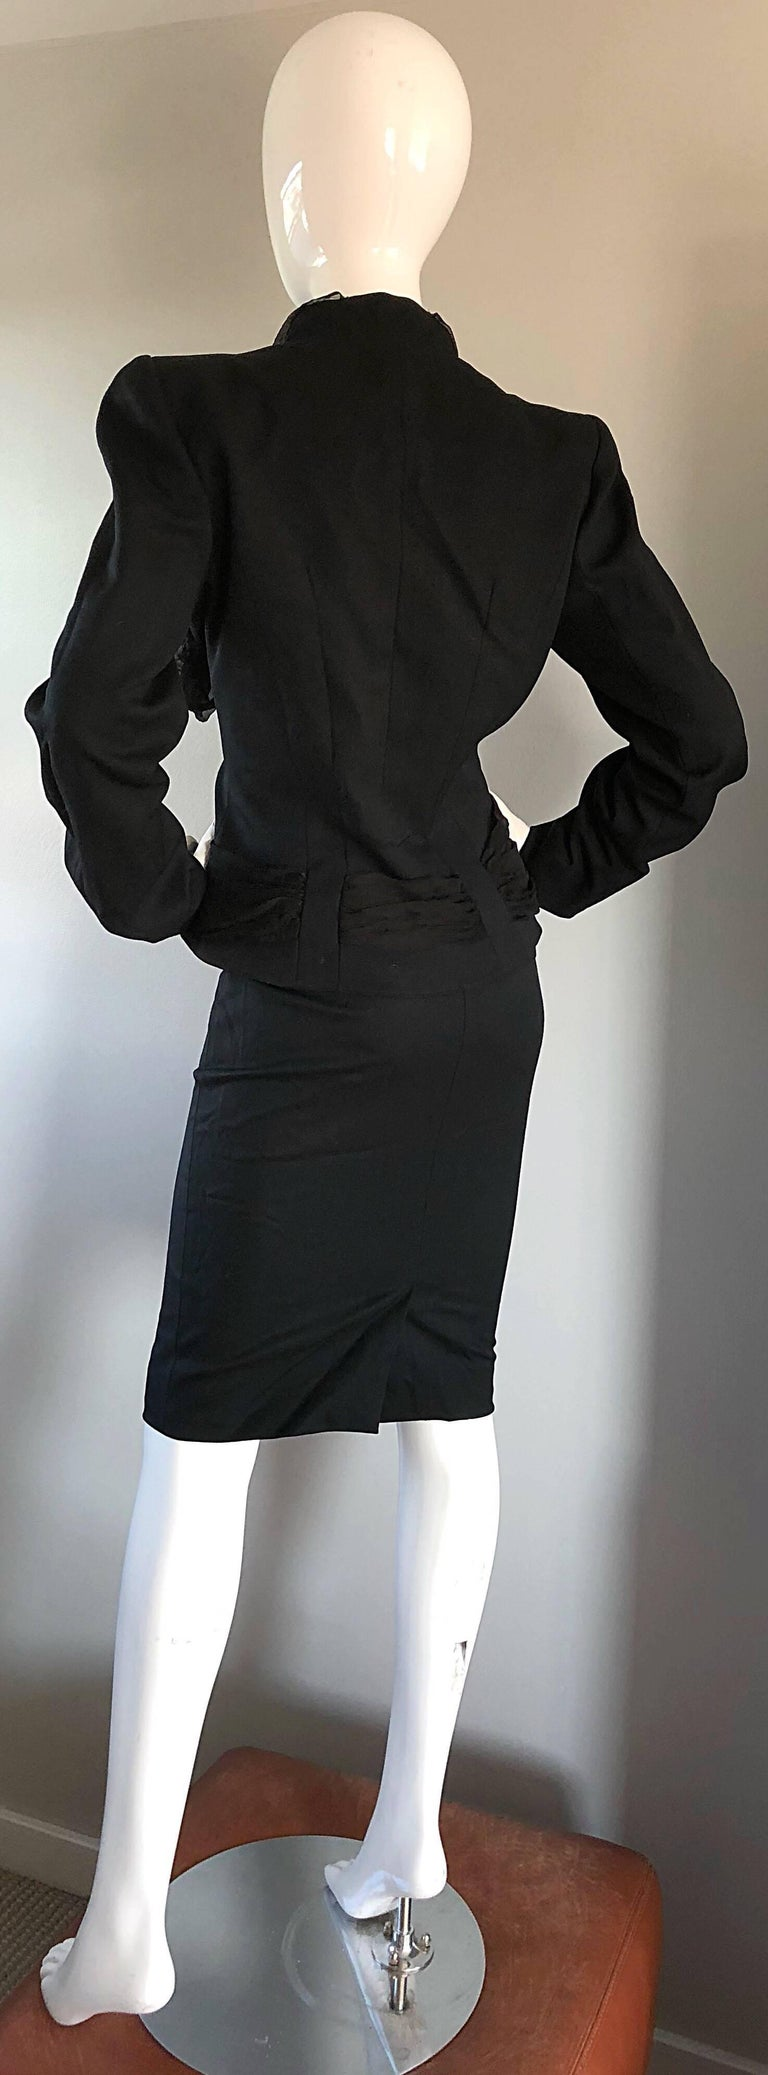 John Galliano Early 2000s Black Size 8 / 10 1940s Style Jacket Skirt Suit For Sale 4